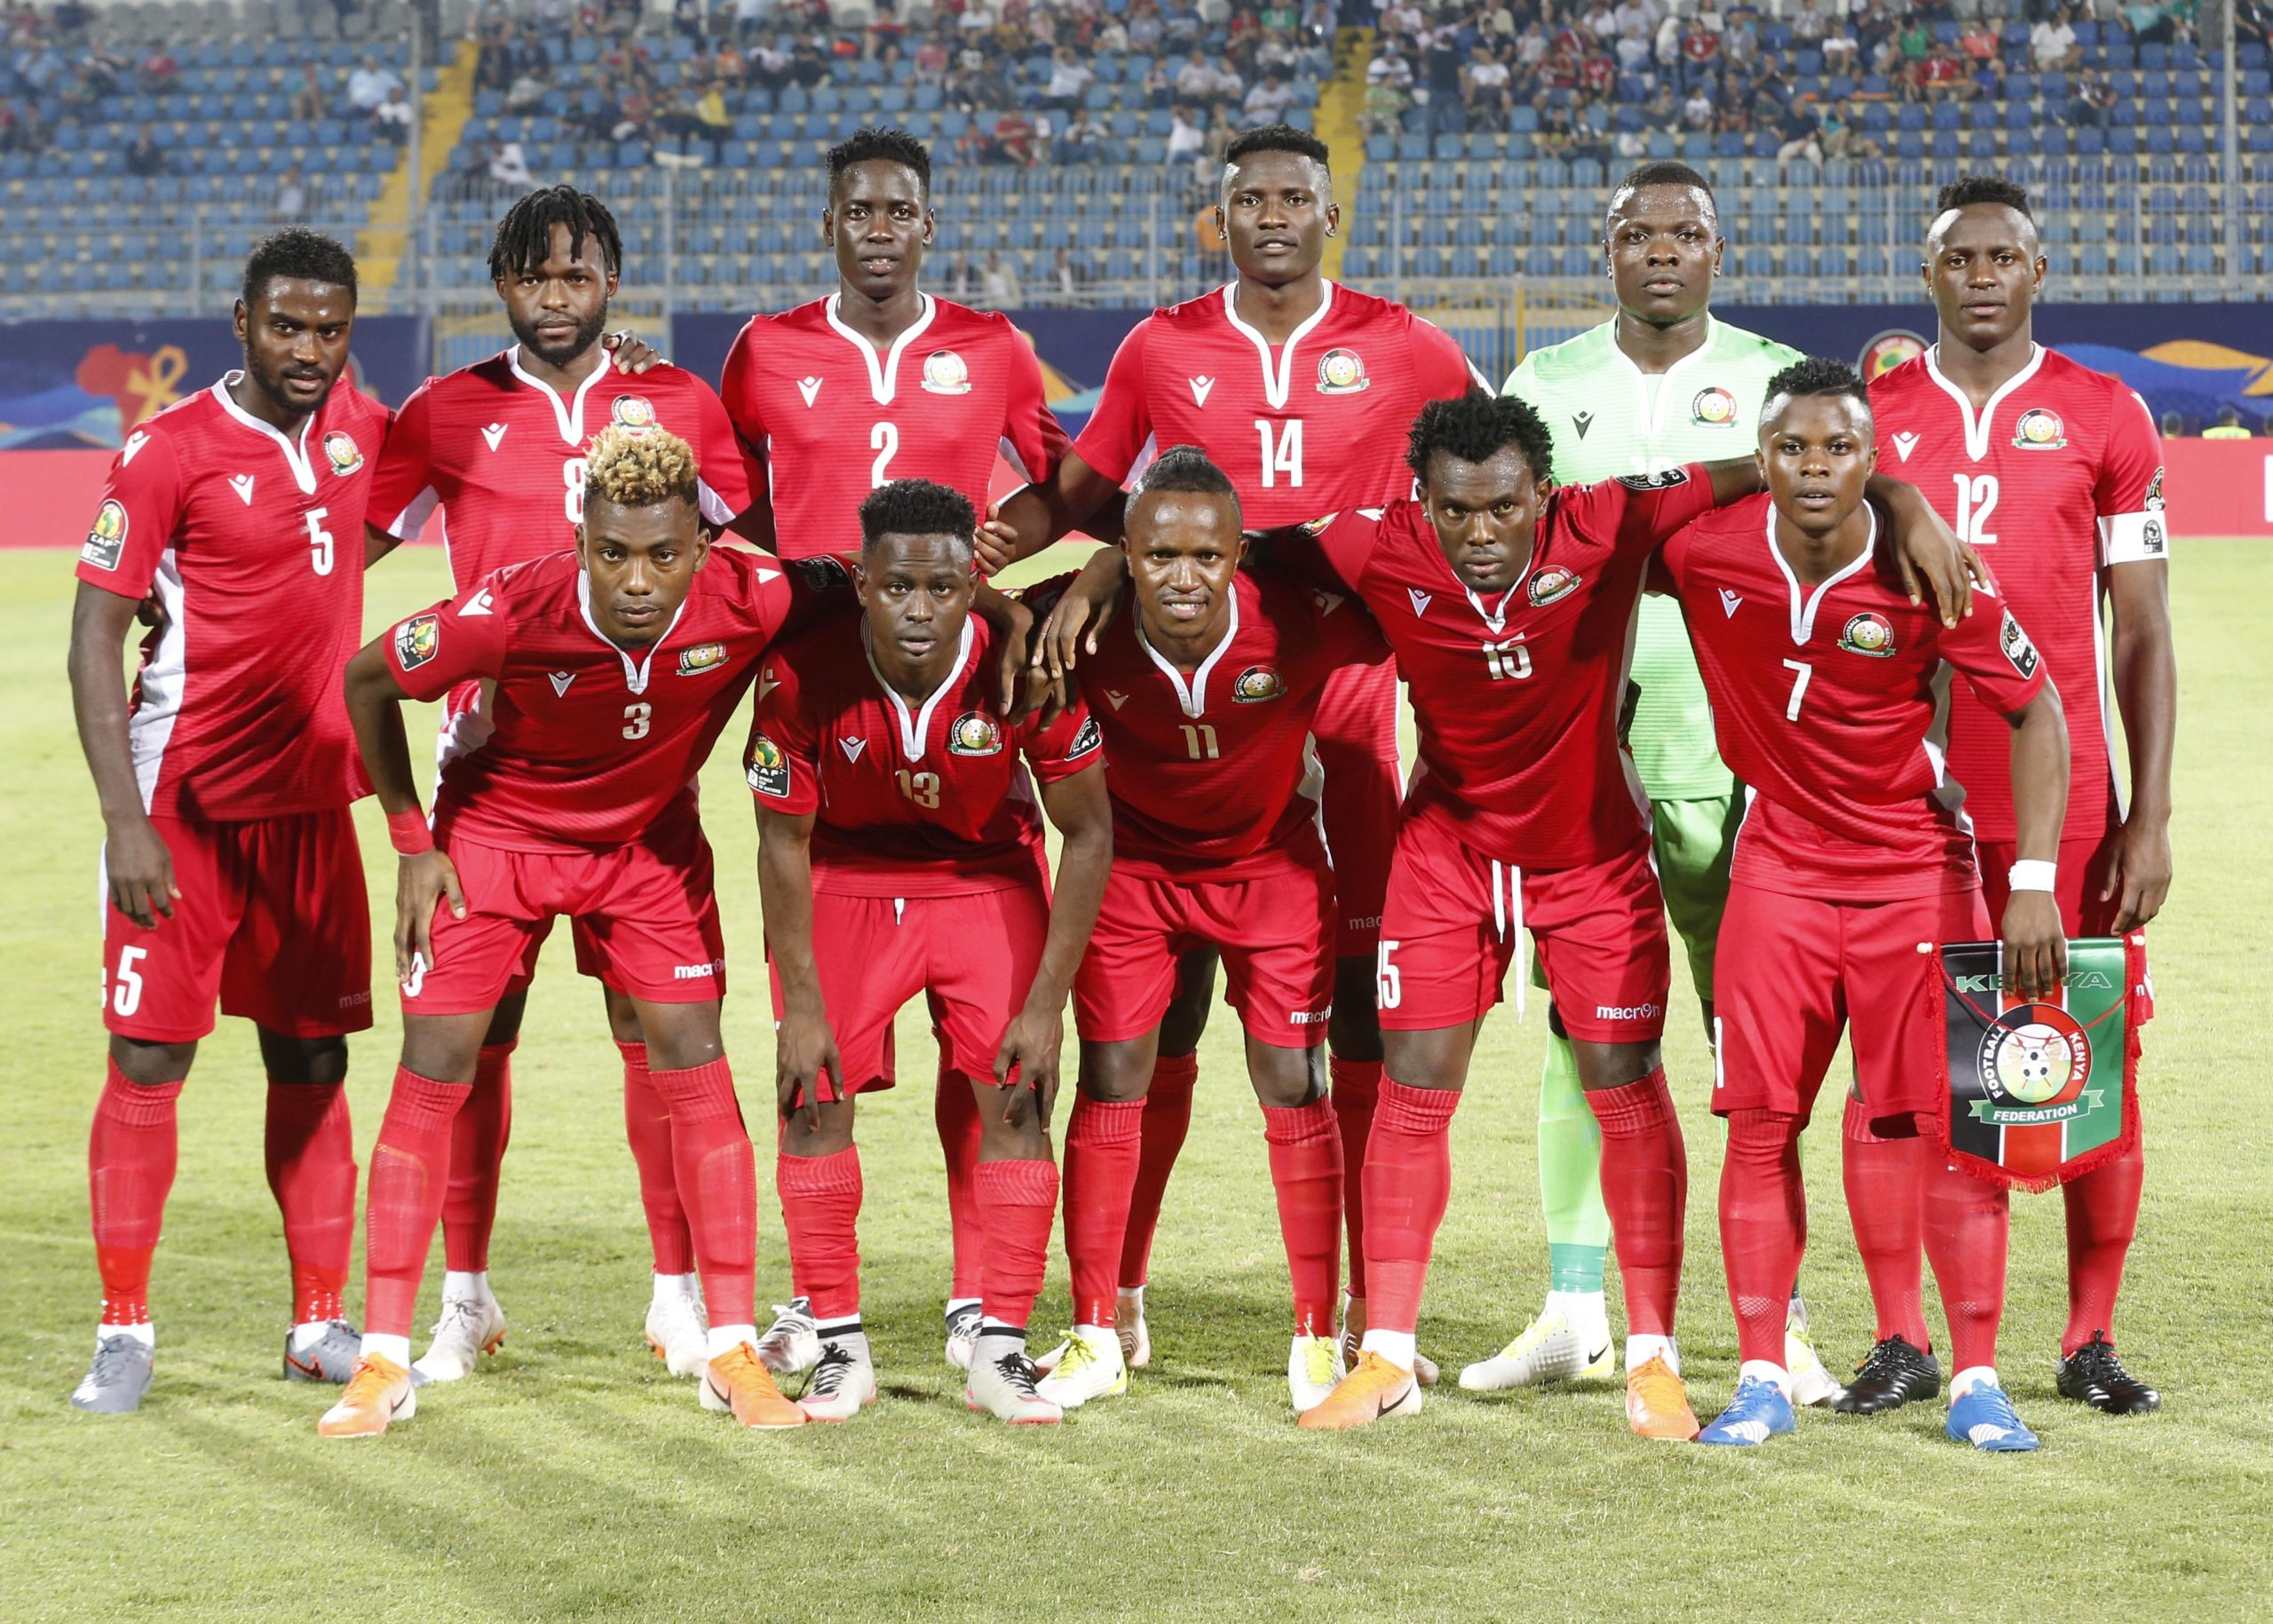 Fixture Dates For Harambee Stars' AFCON 2021 Qualifiers